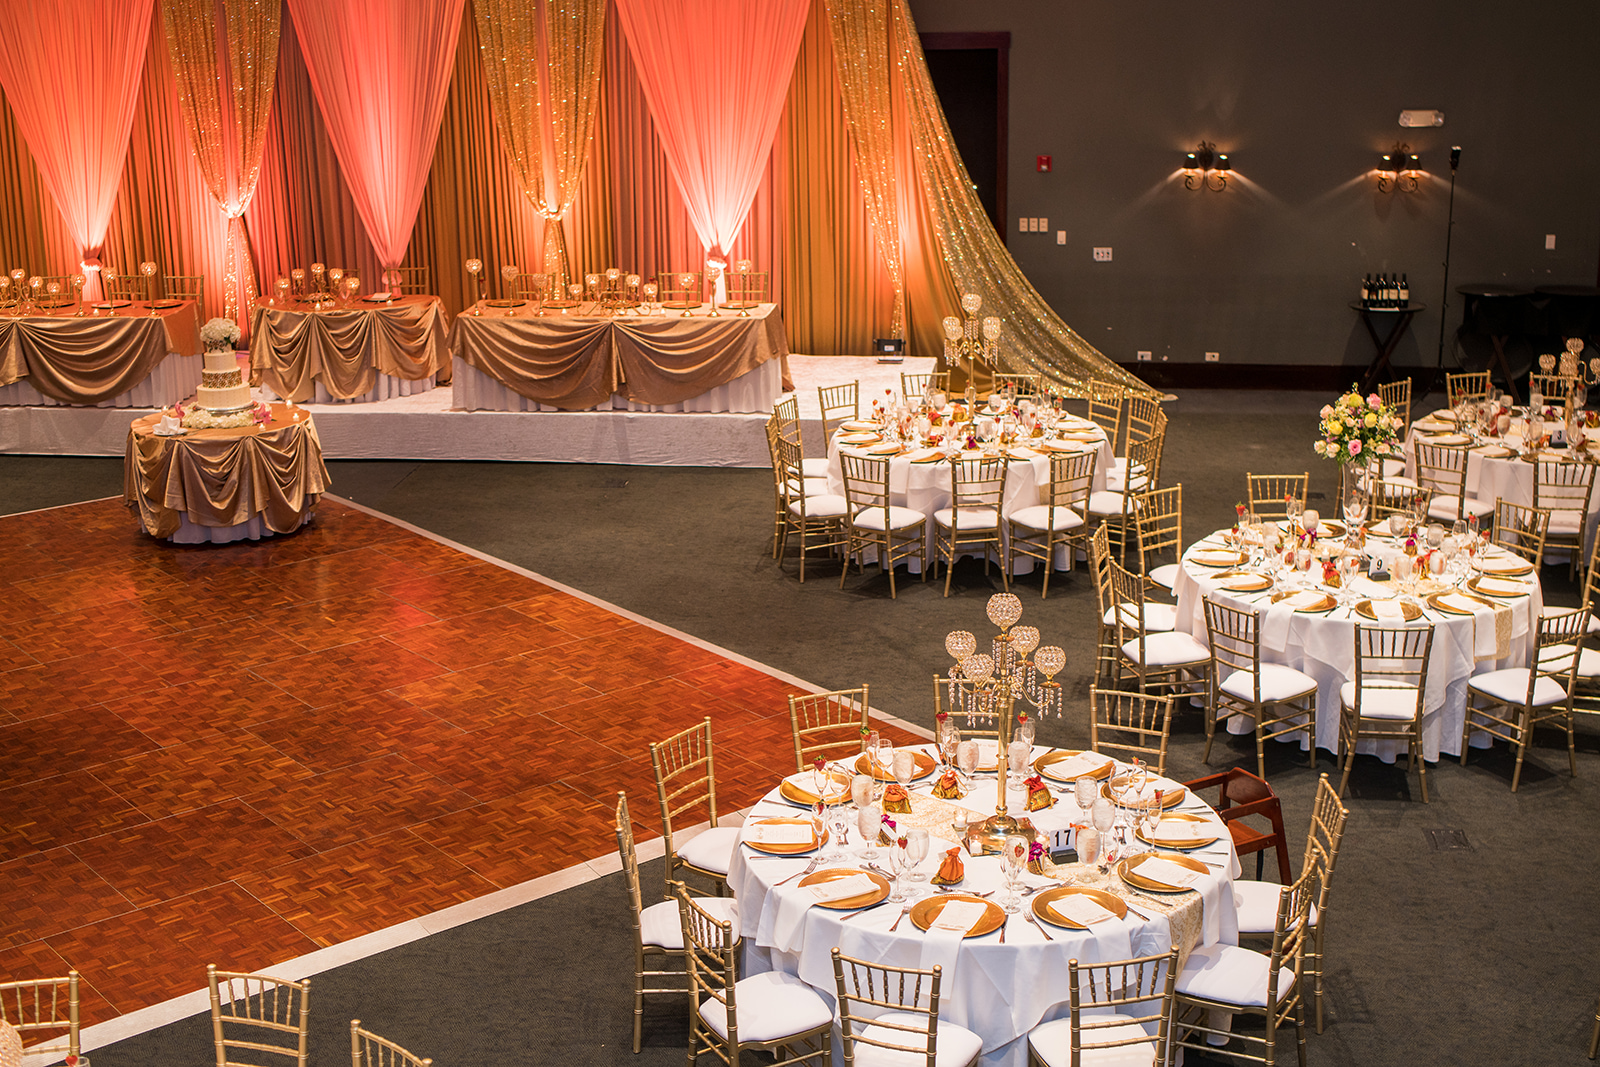 Le Cape Weddings - South Asian Wedding - Ishani and Sidhart - Details of Reception -12.jpg